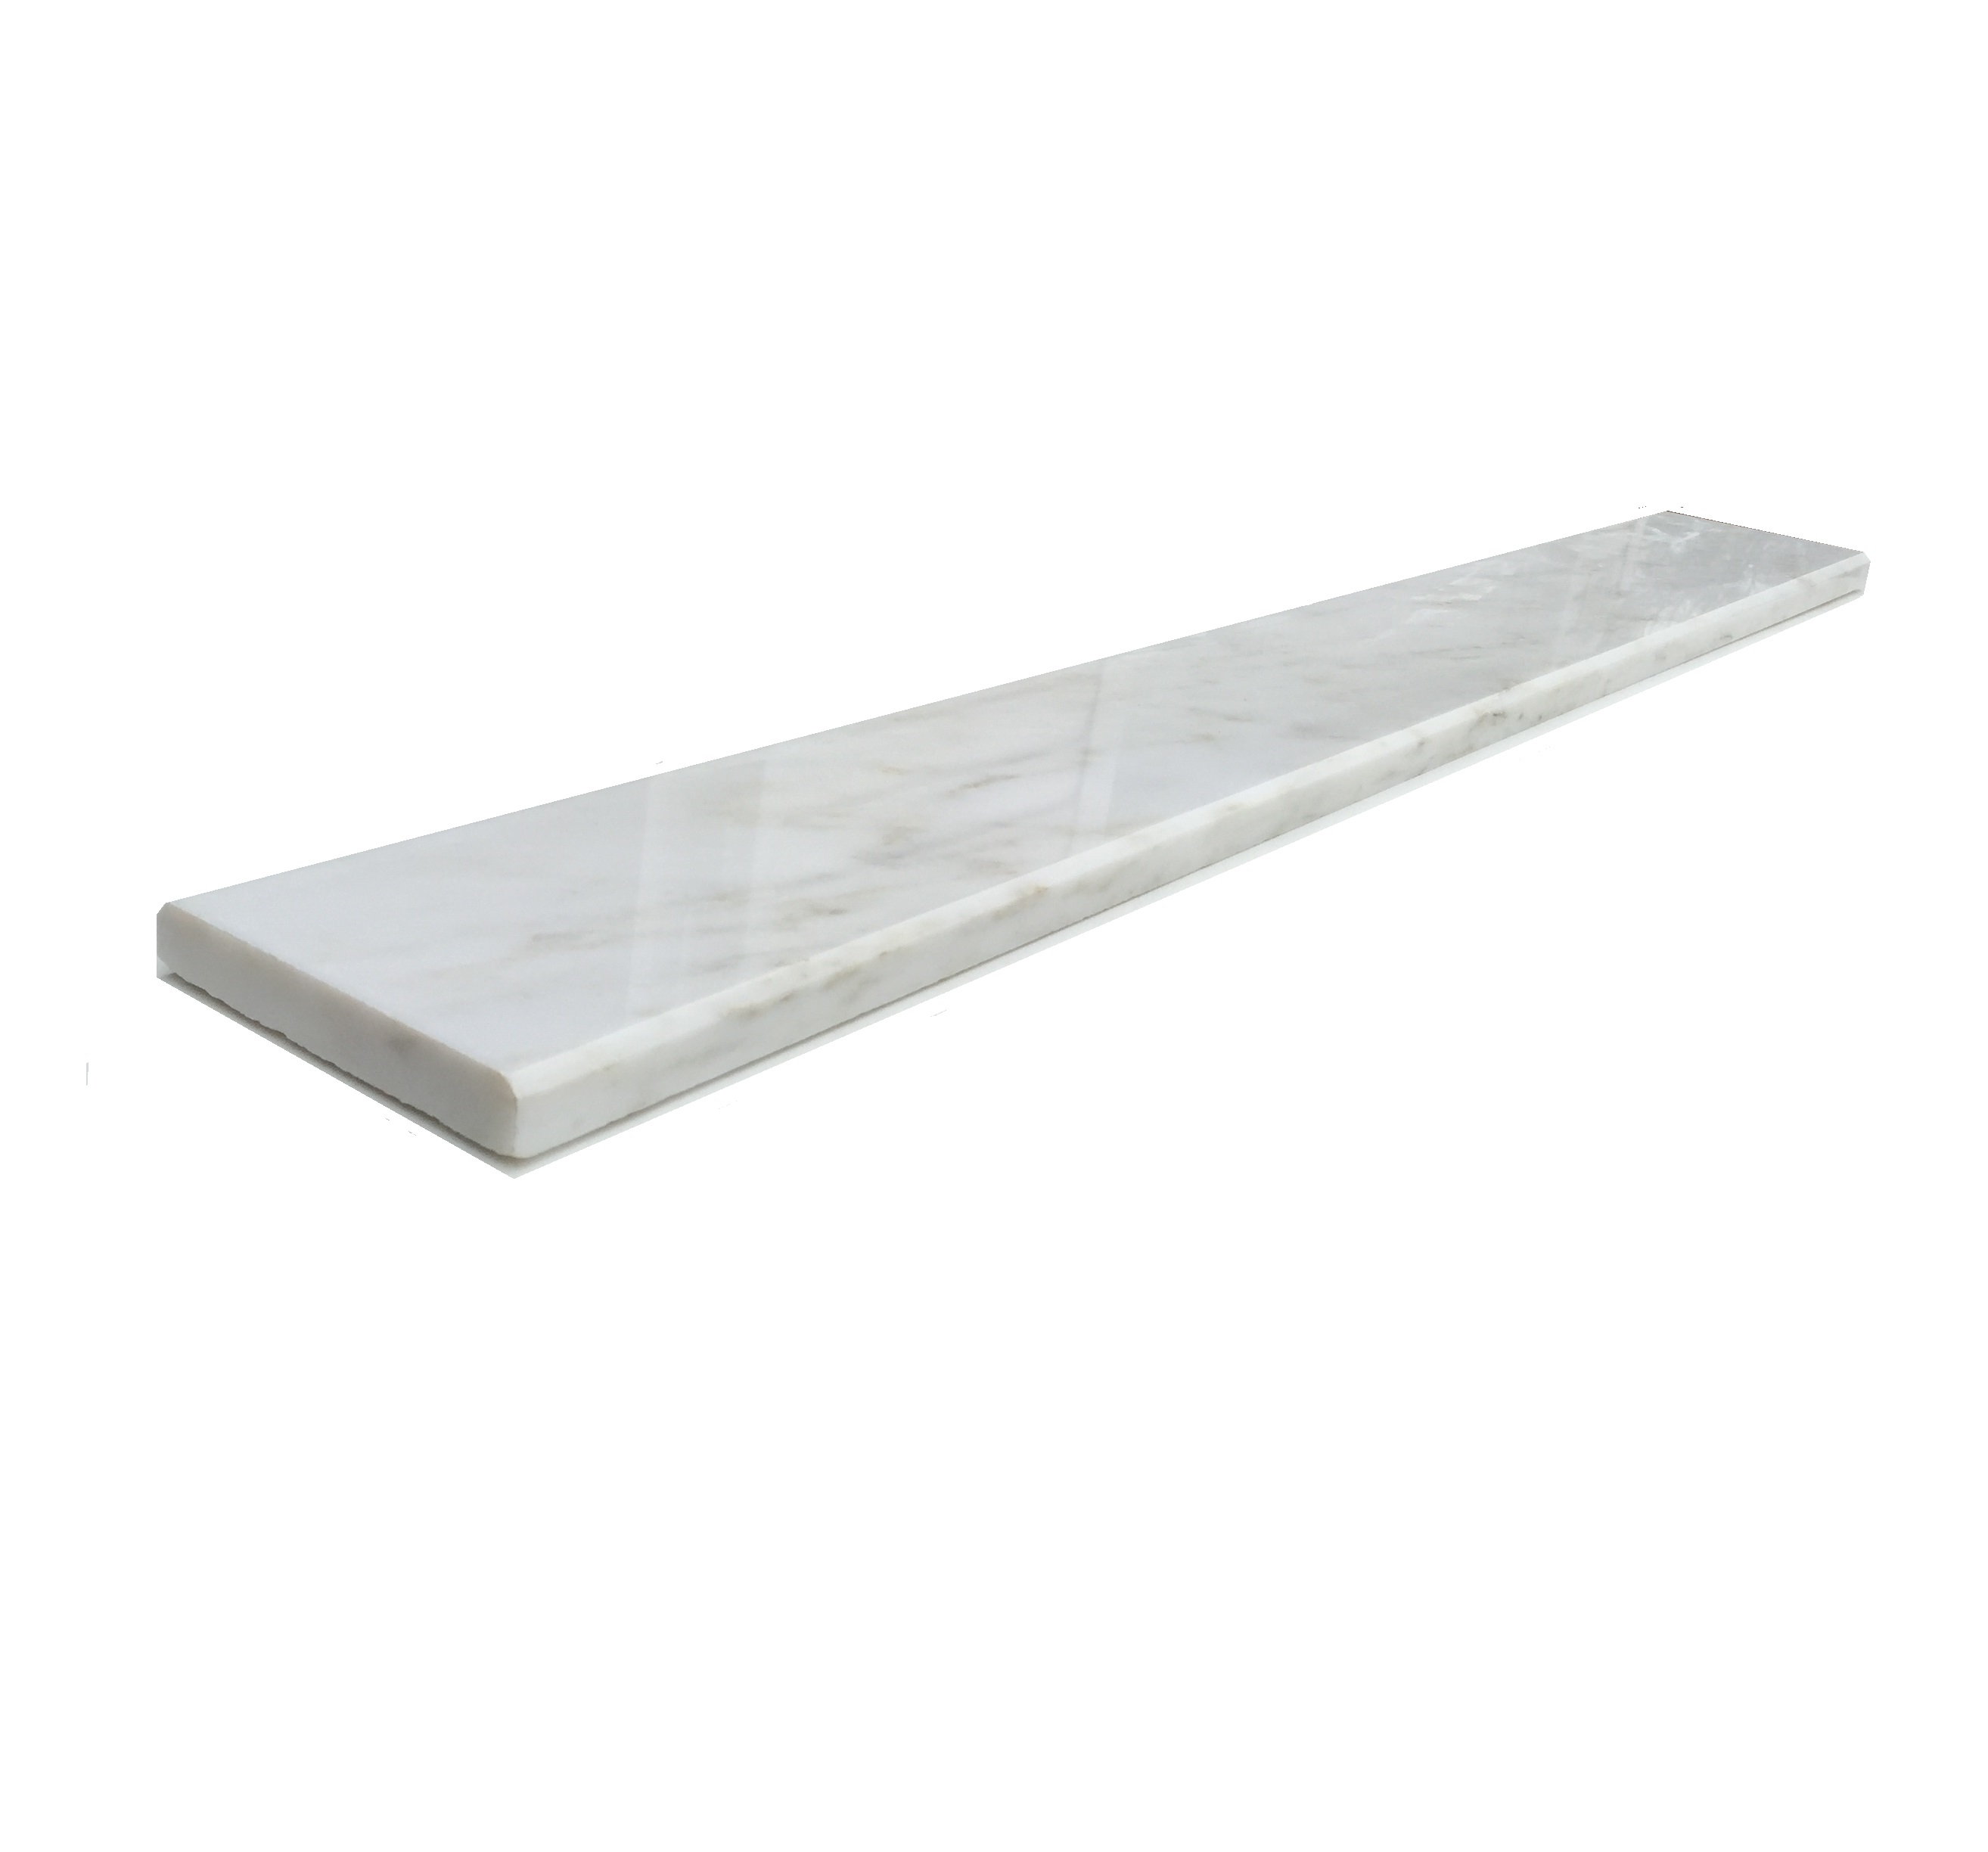 Carrara Threshold: Hampton Carrara Threshold « TOUCHDOWN TILE